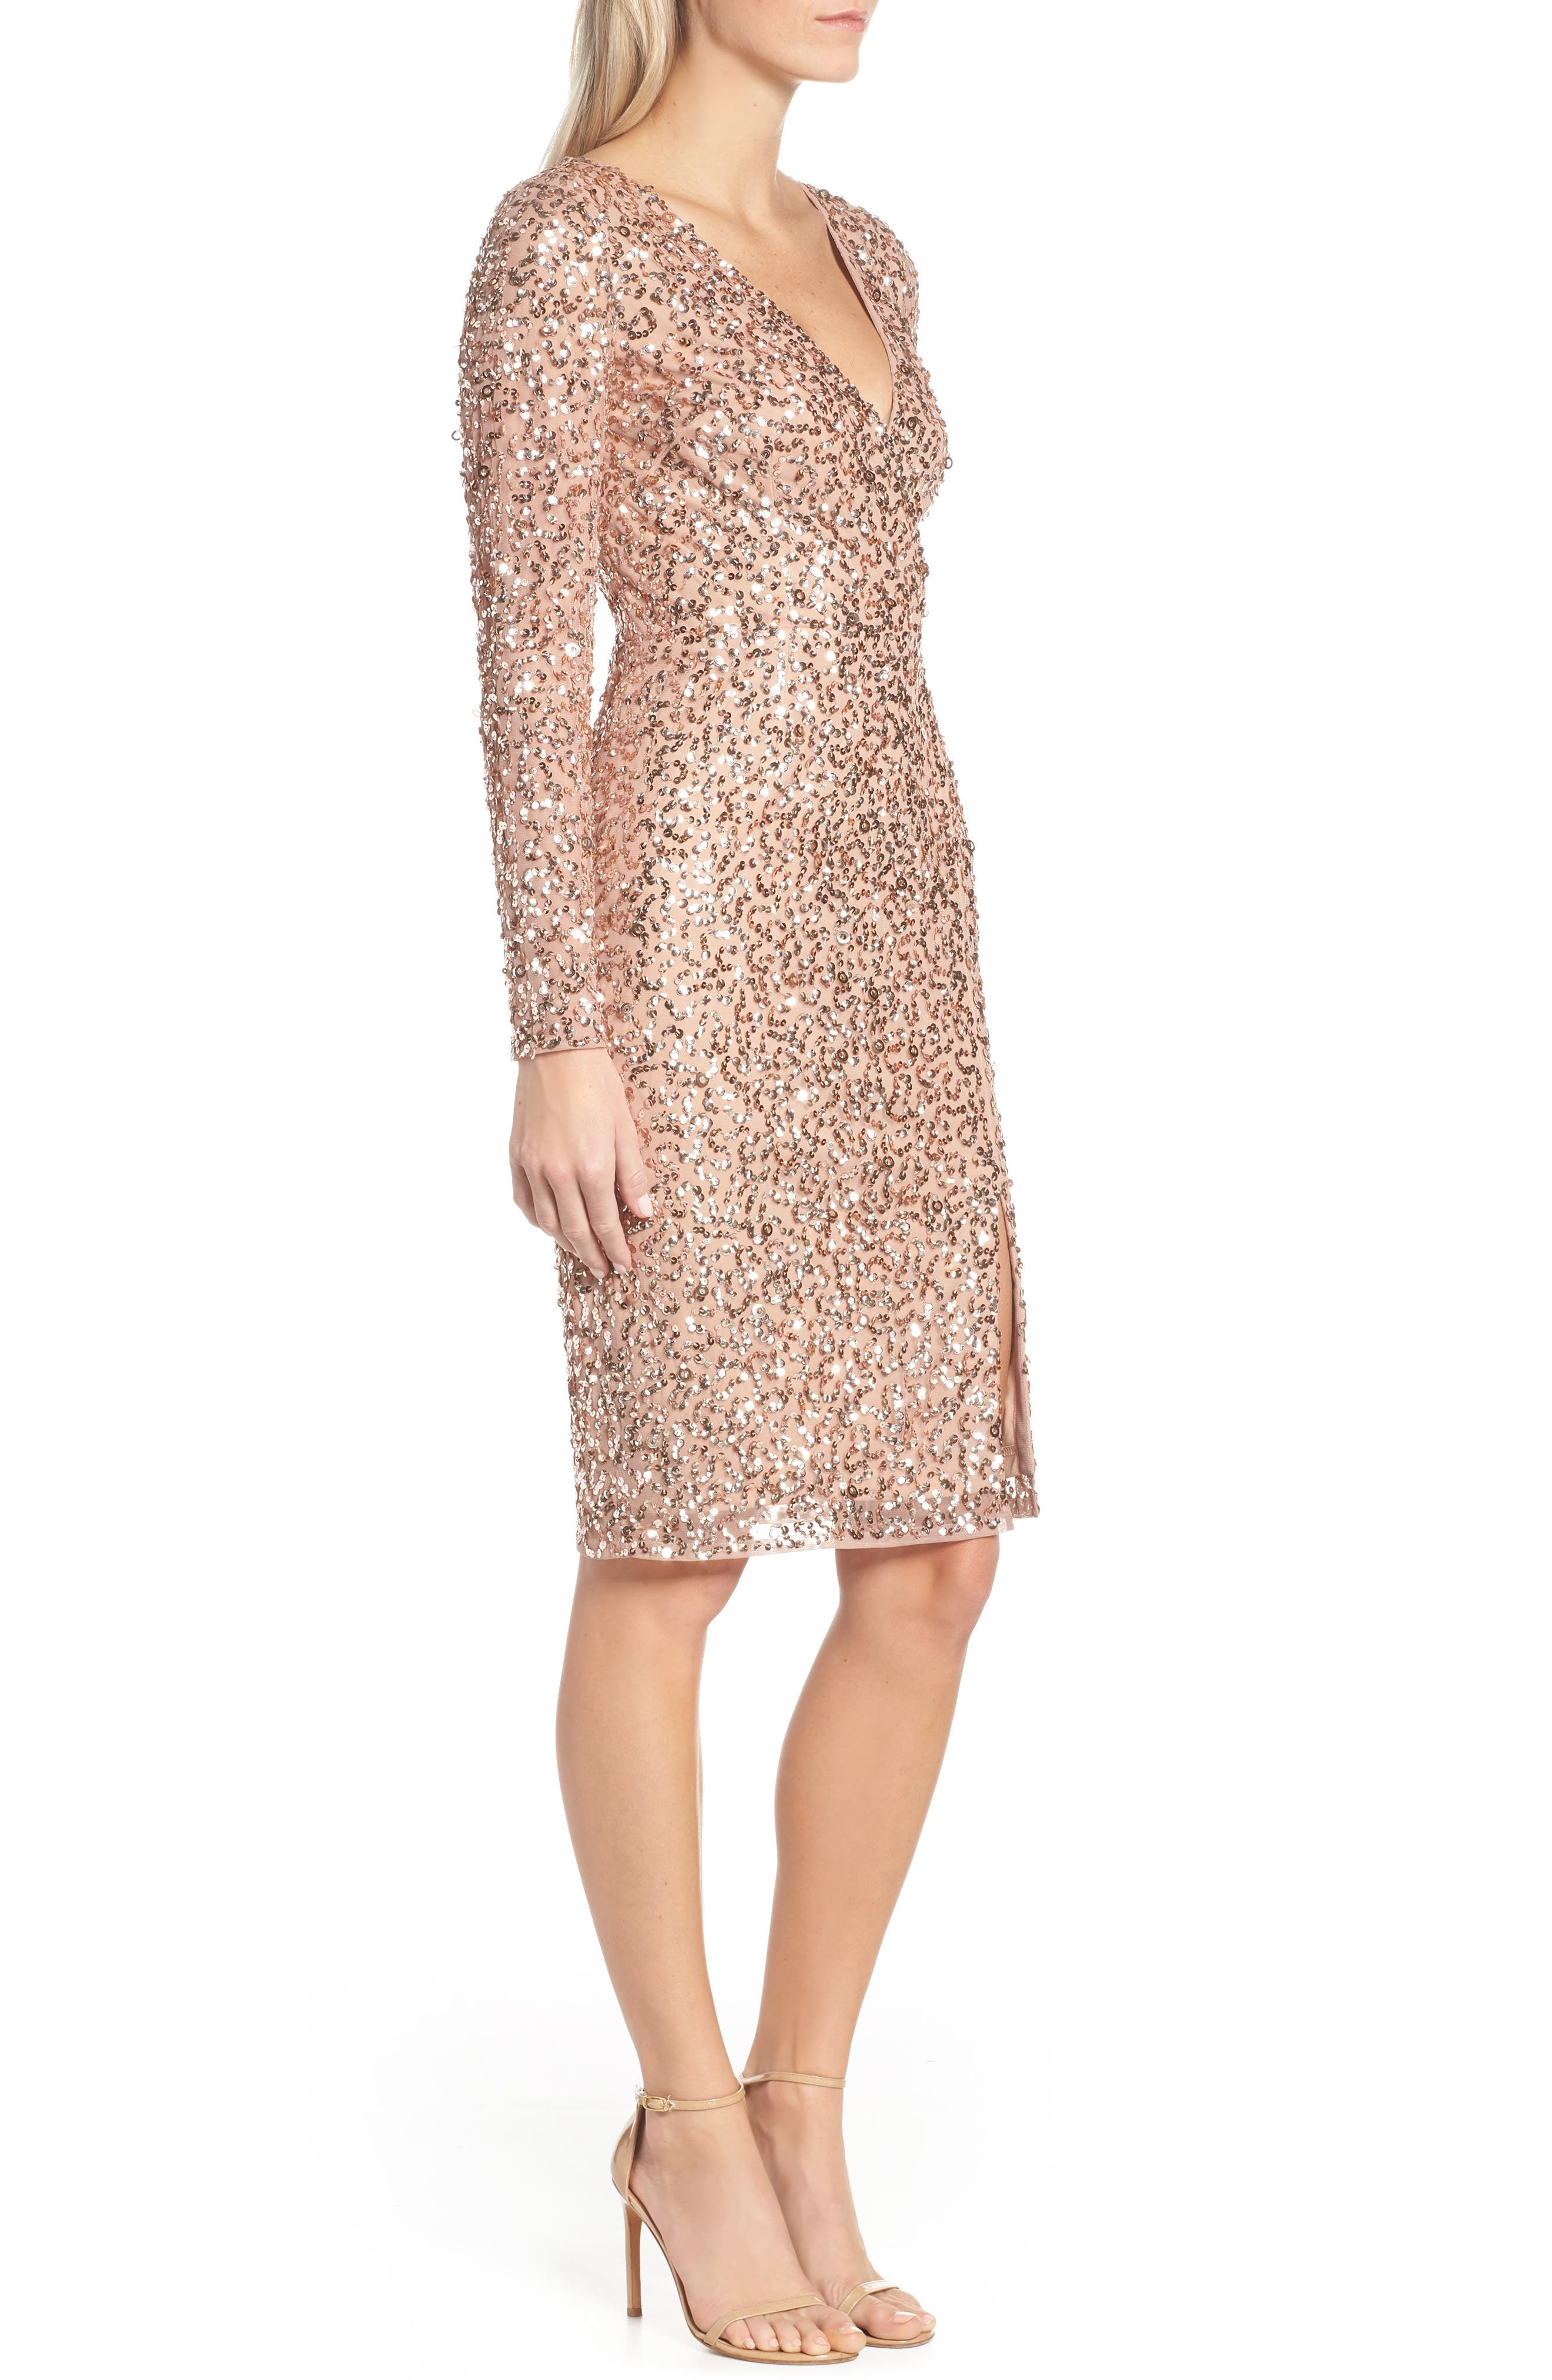 ADRIANNA PAPELL, Beaded Mesh Cocktail Dress, Alternate thumbnail 4, color, 680